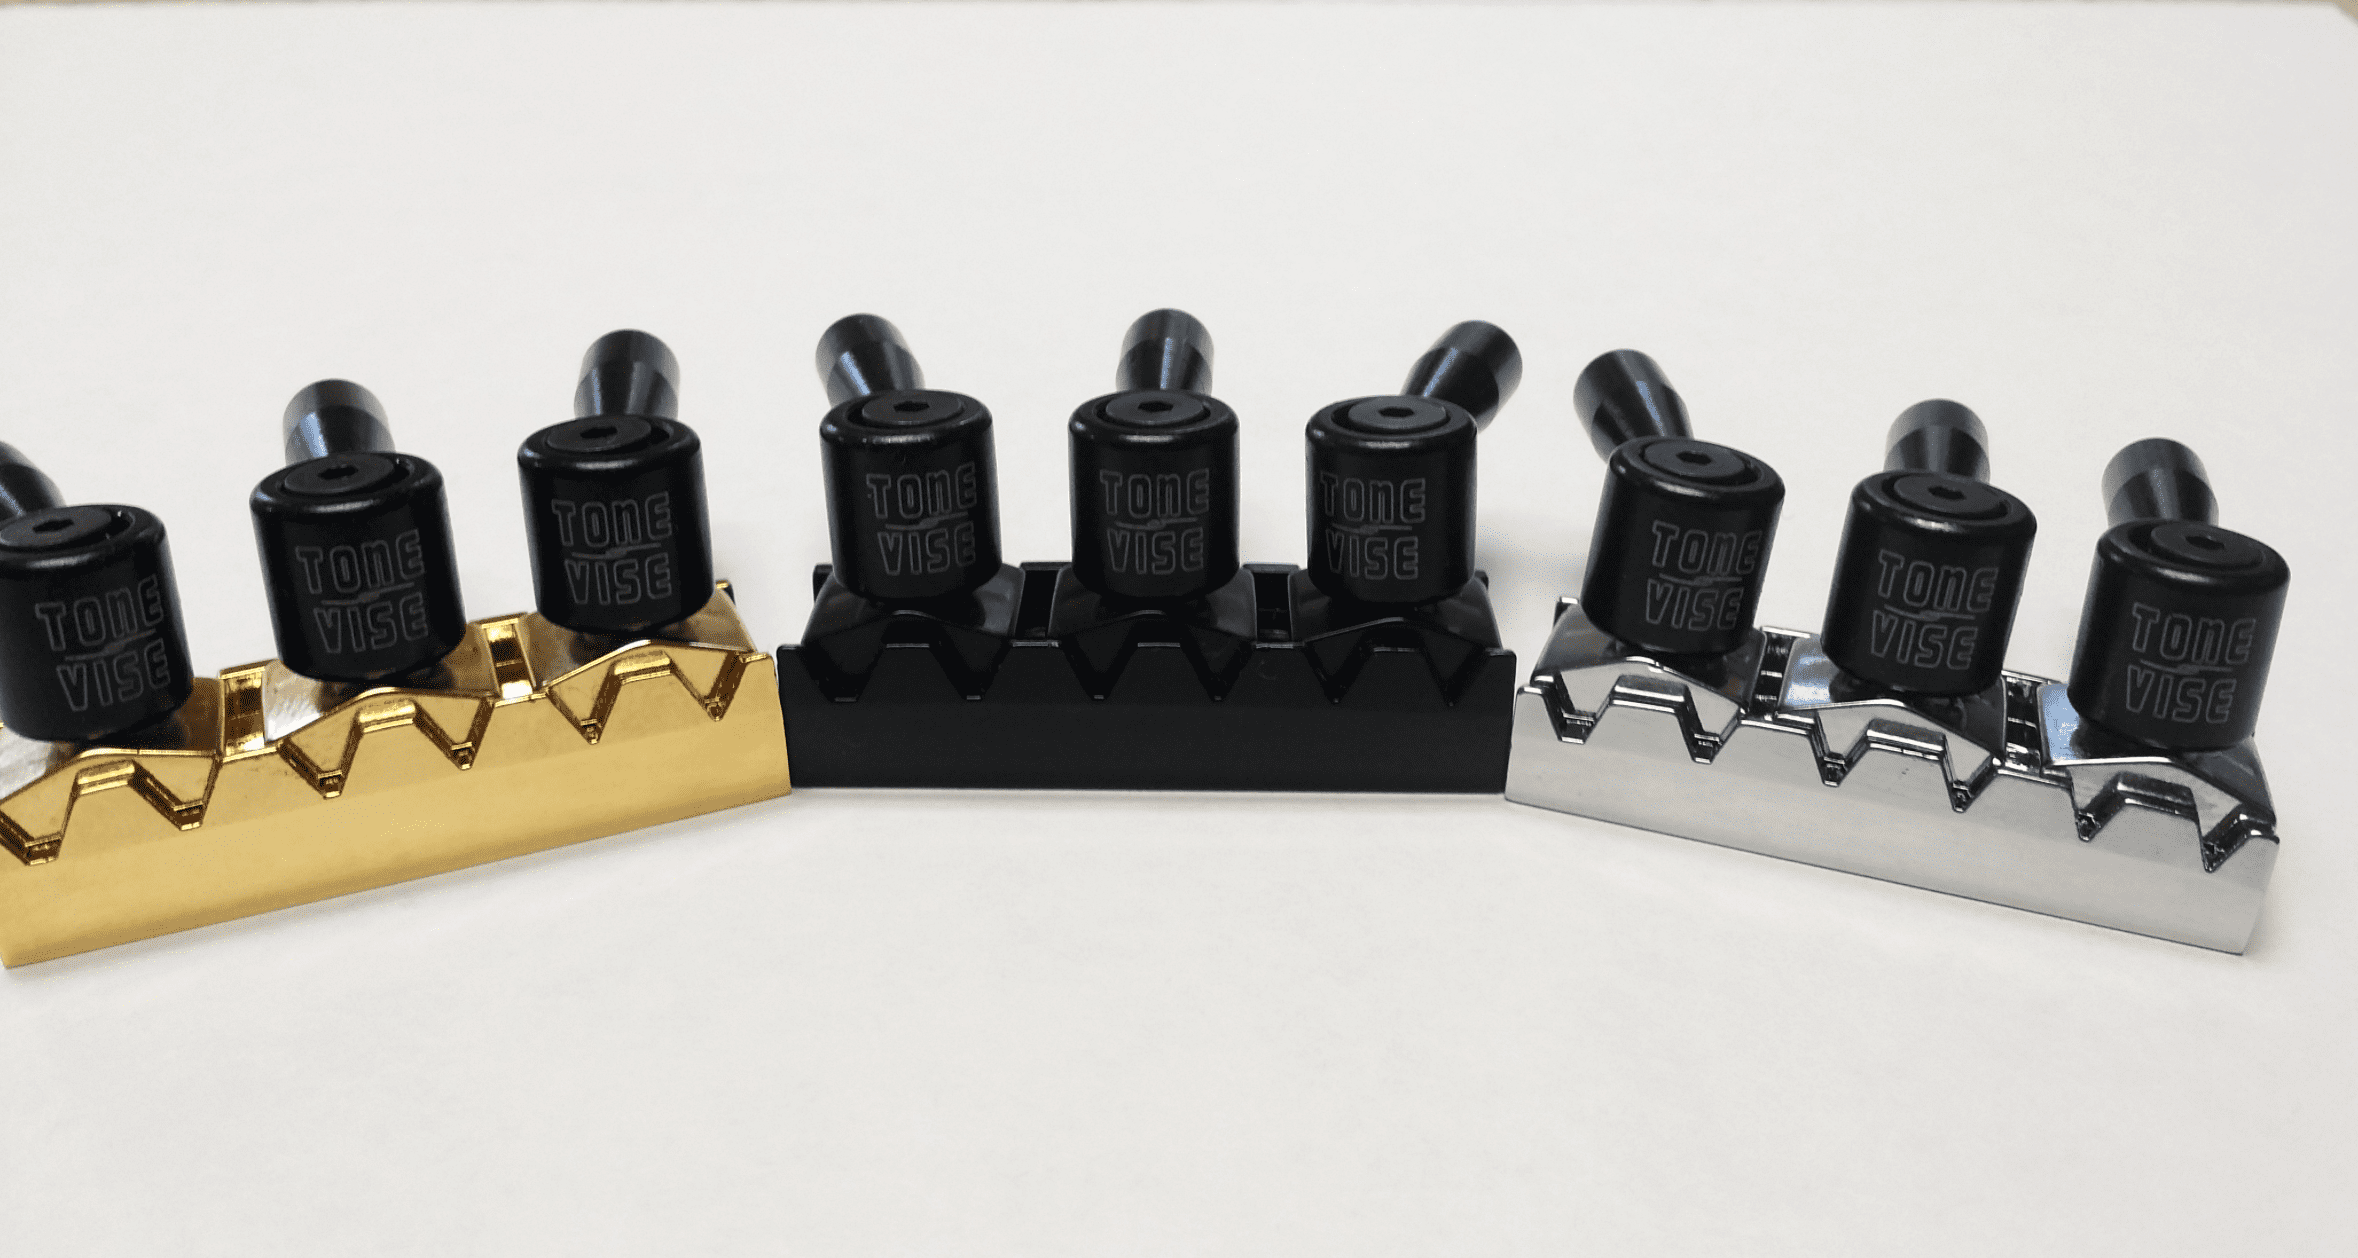 Tone Vice Key Locks in Gold, Black or Chrome